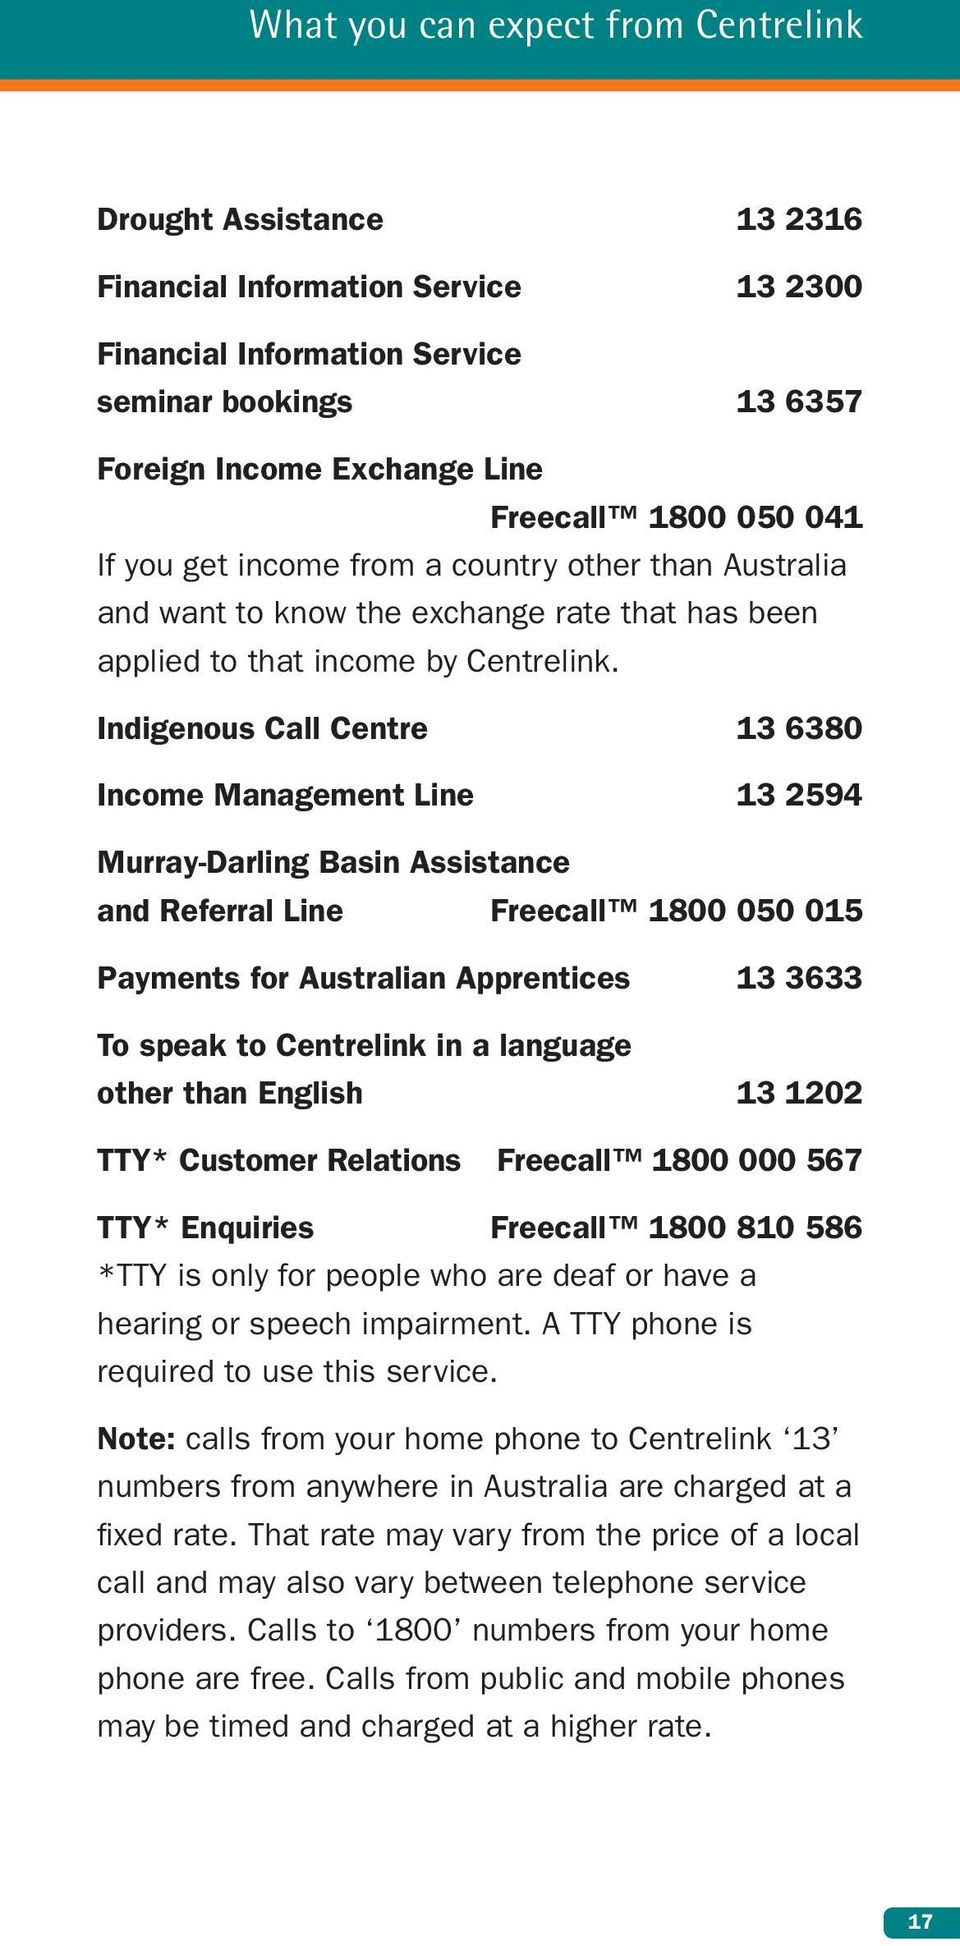 Indigenous Call Centre 13 6380 Income Management Line 13 2594 Murray-Darling Basin Assistance and Referral Line Freecall 1800 050 015 Payments for Australian Apprentices 13 3633 To speak to